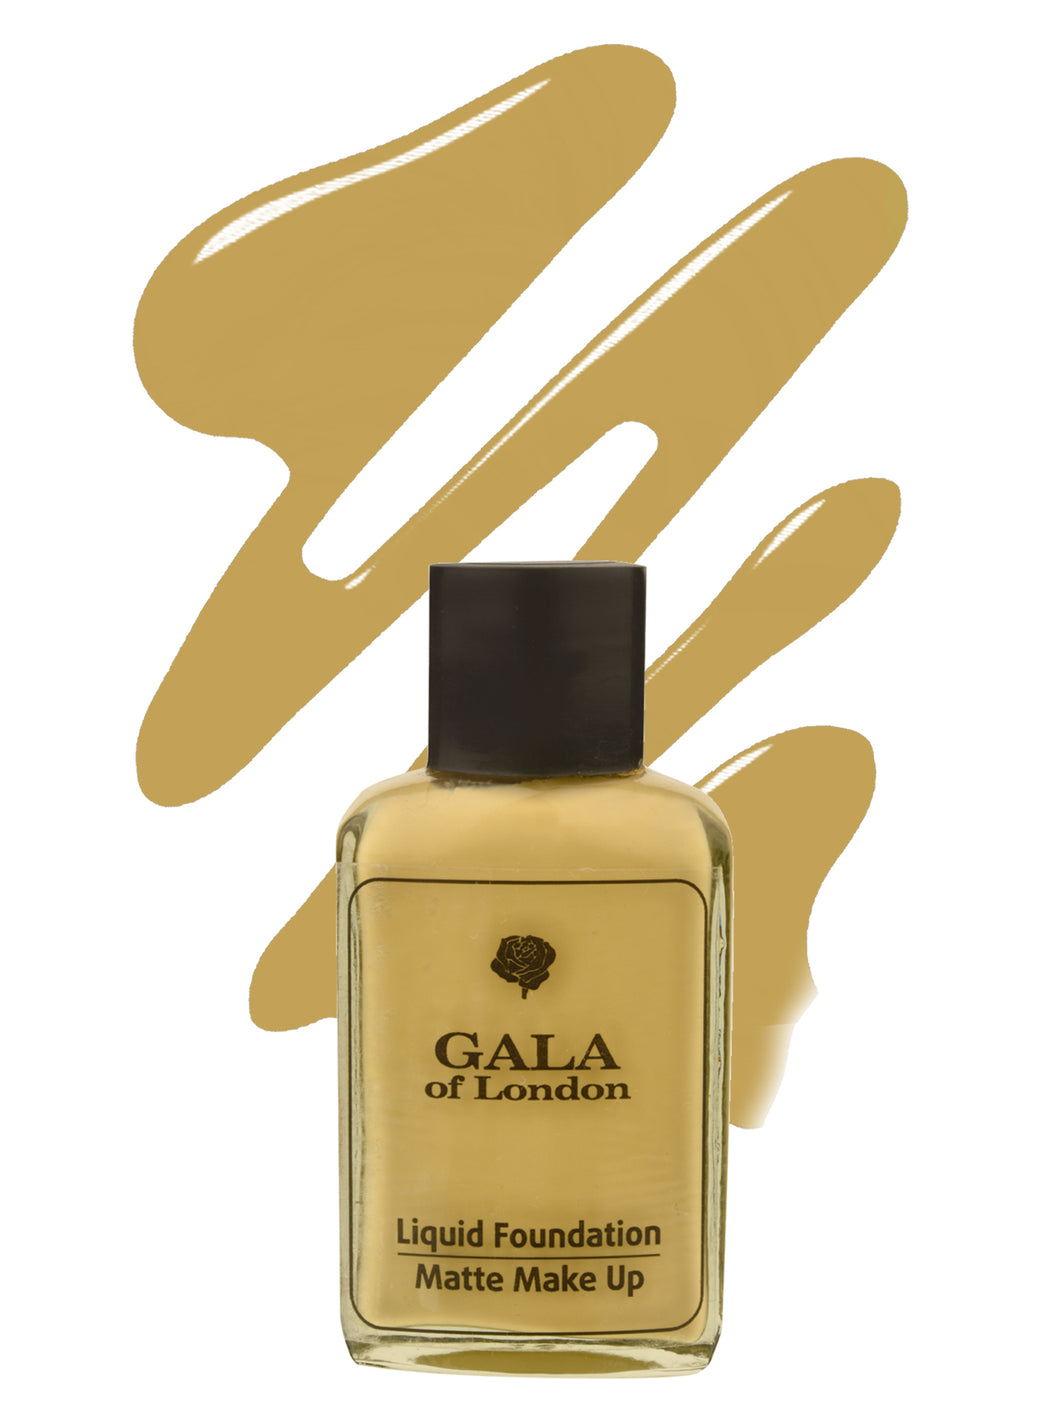 Gala of London Matte Foundation 30g - Classic Ivory